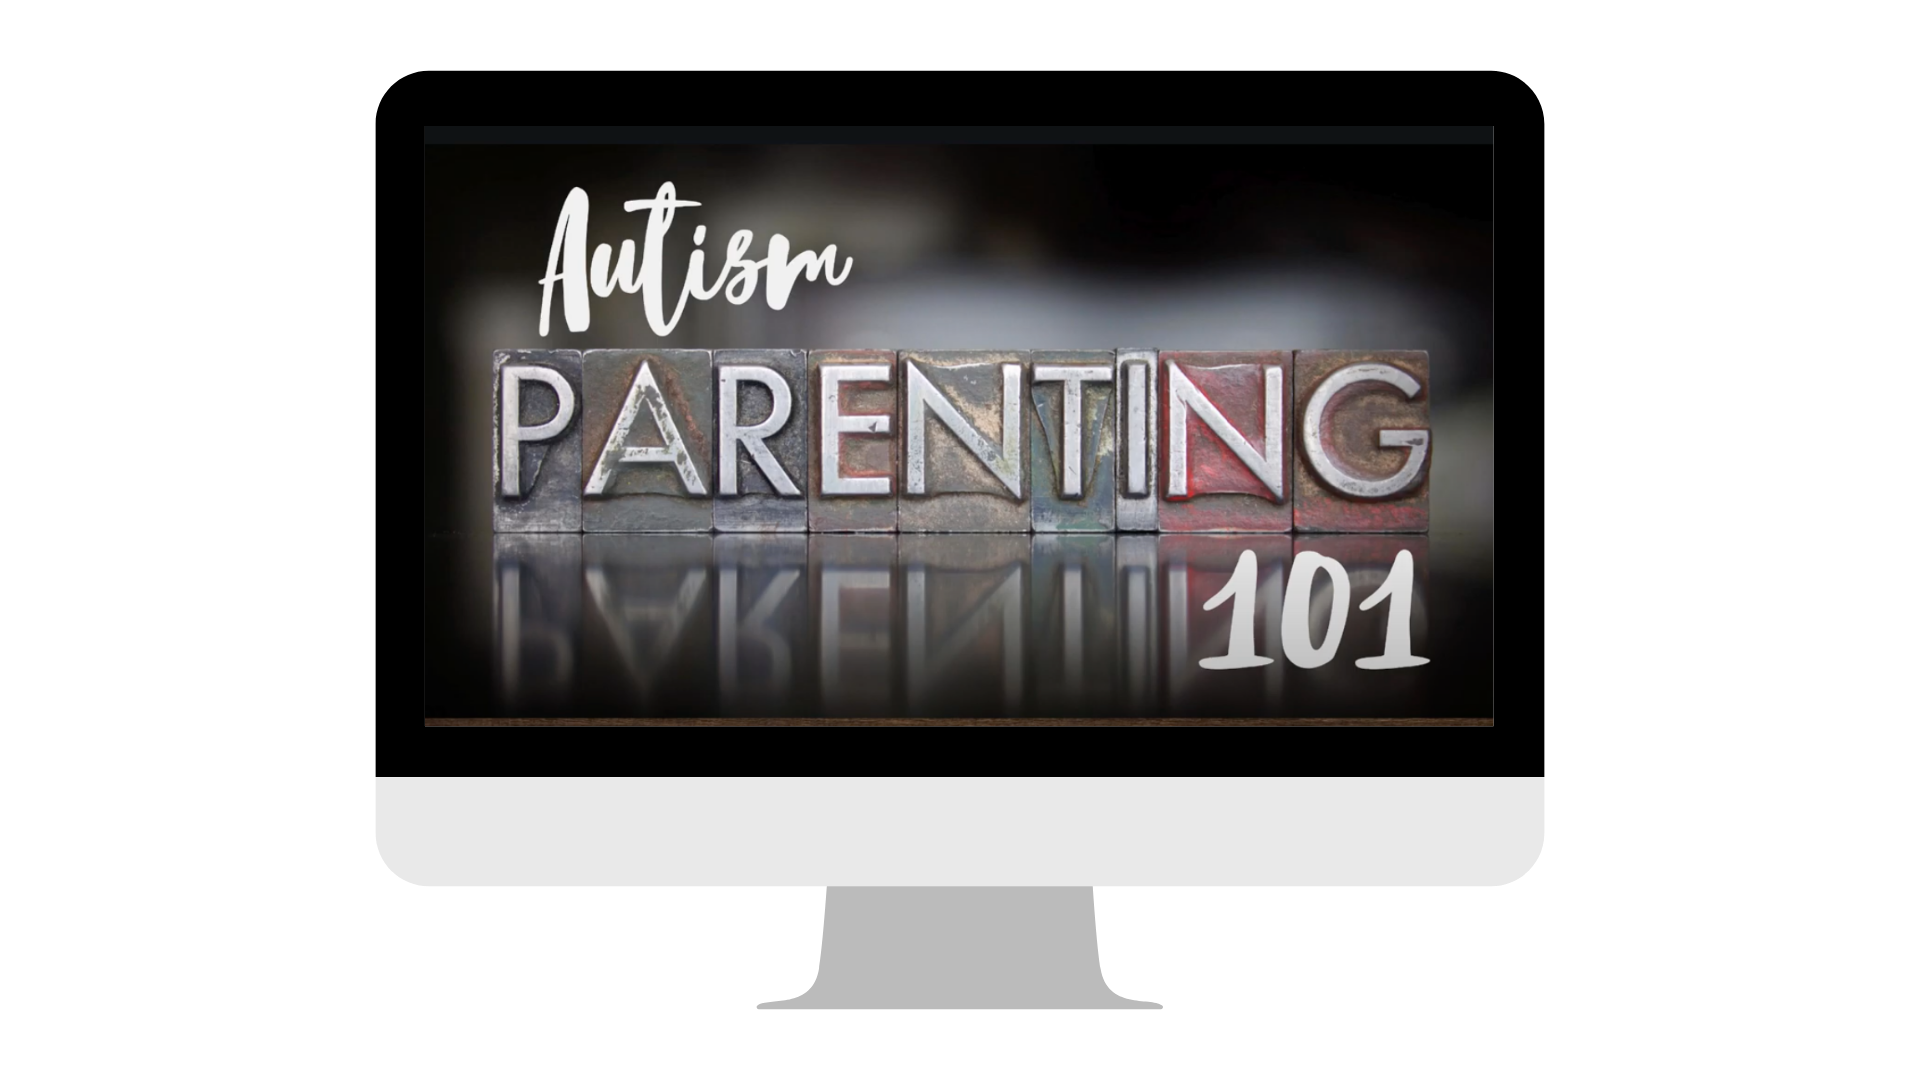 autism parenting 101 on a image of a computer screen